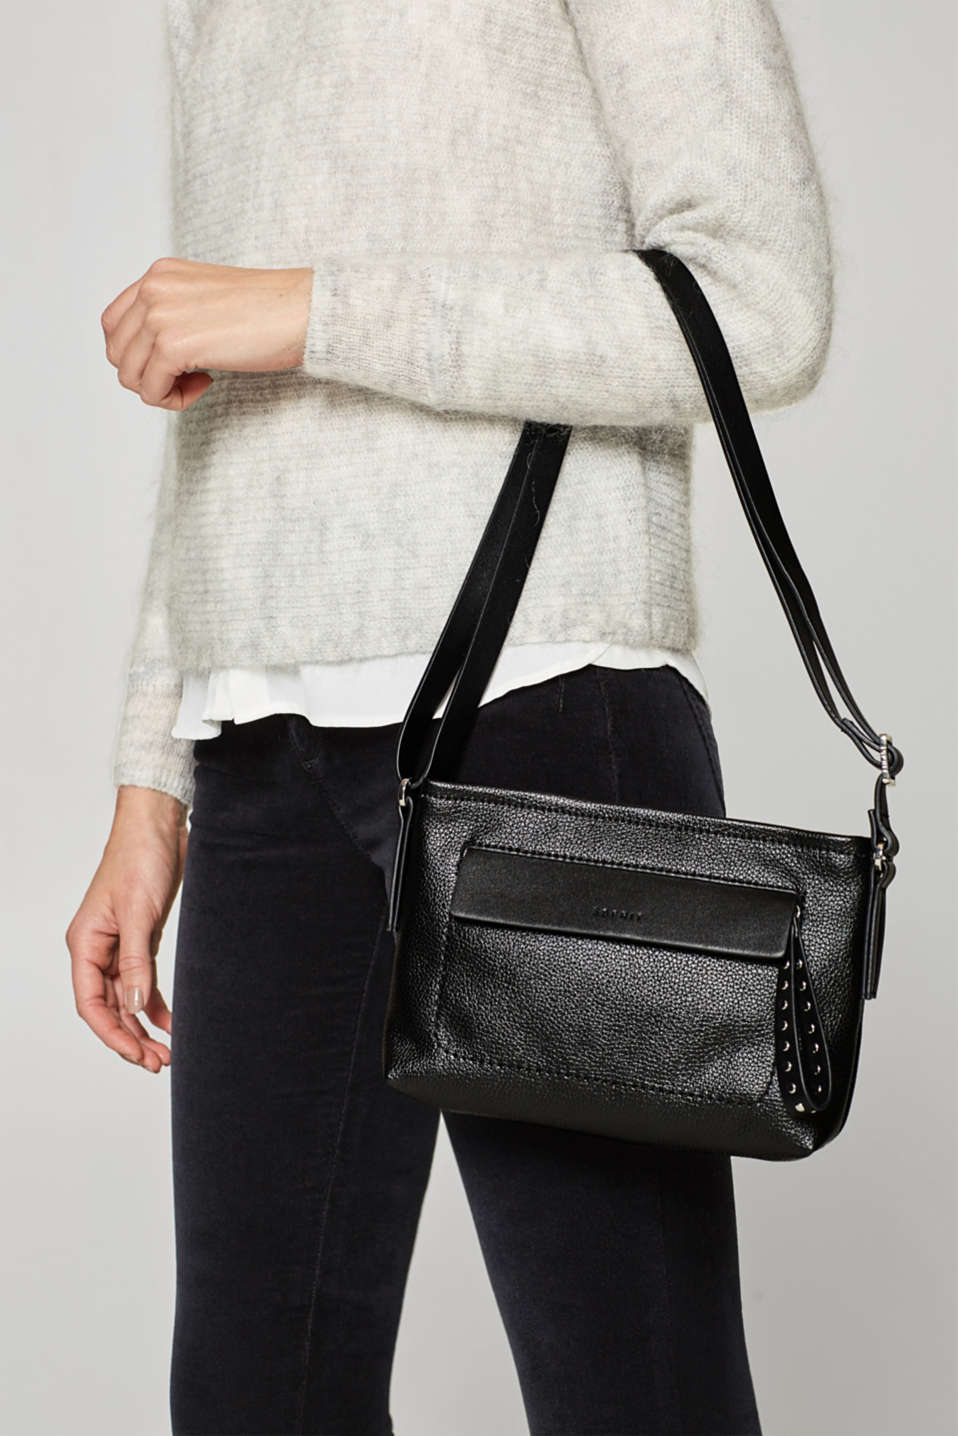 Small shoulder bag with stud details